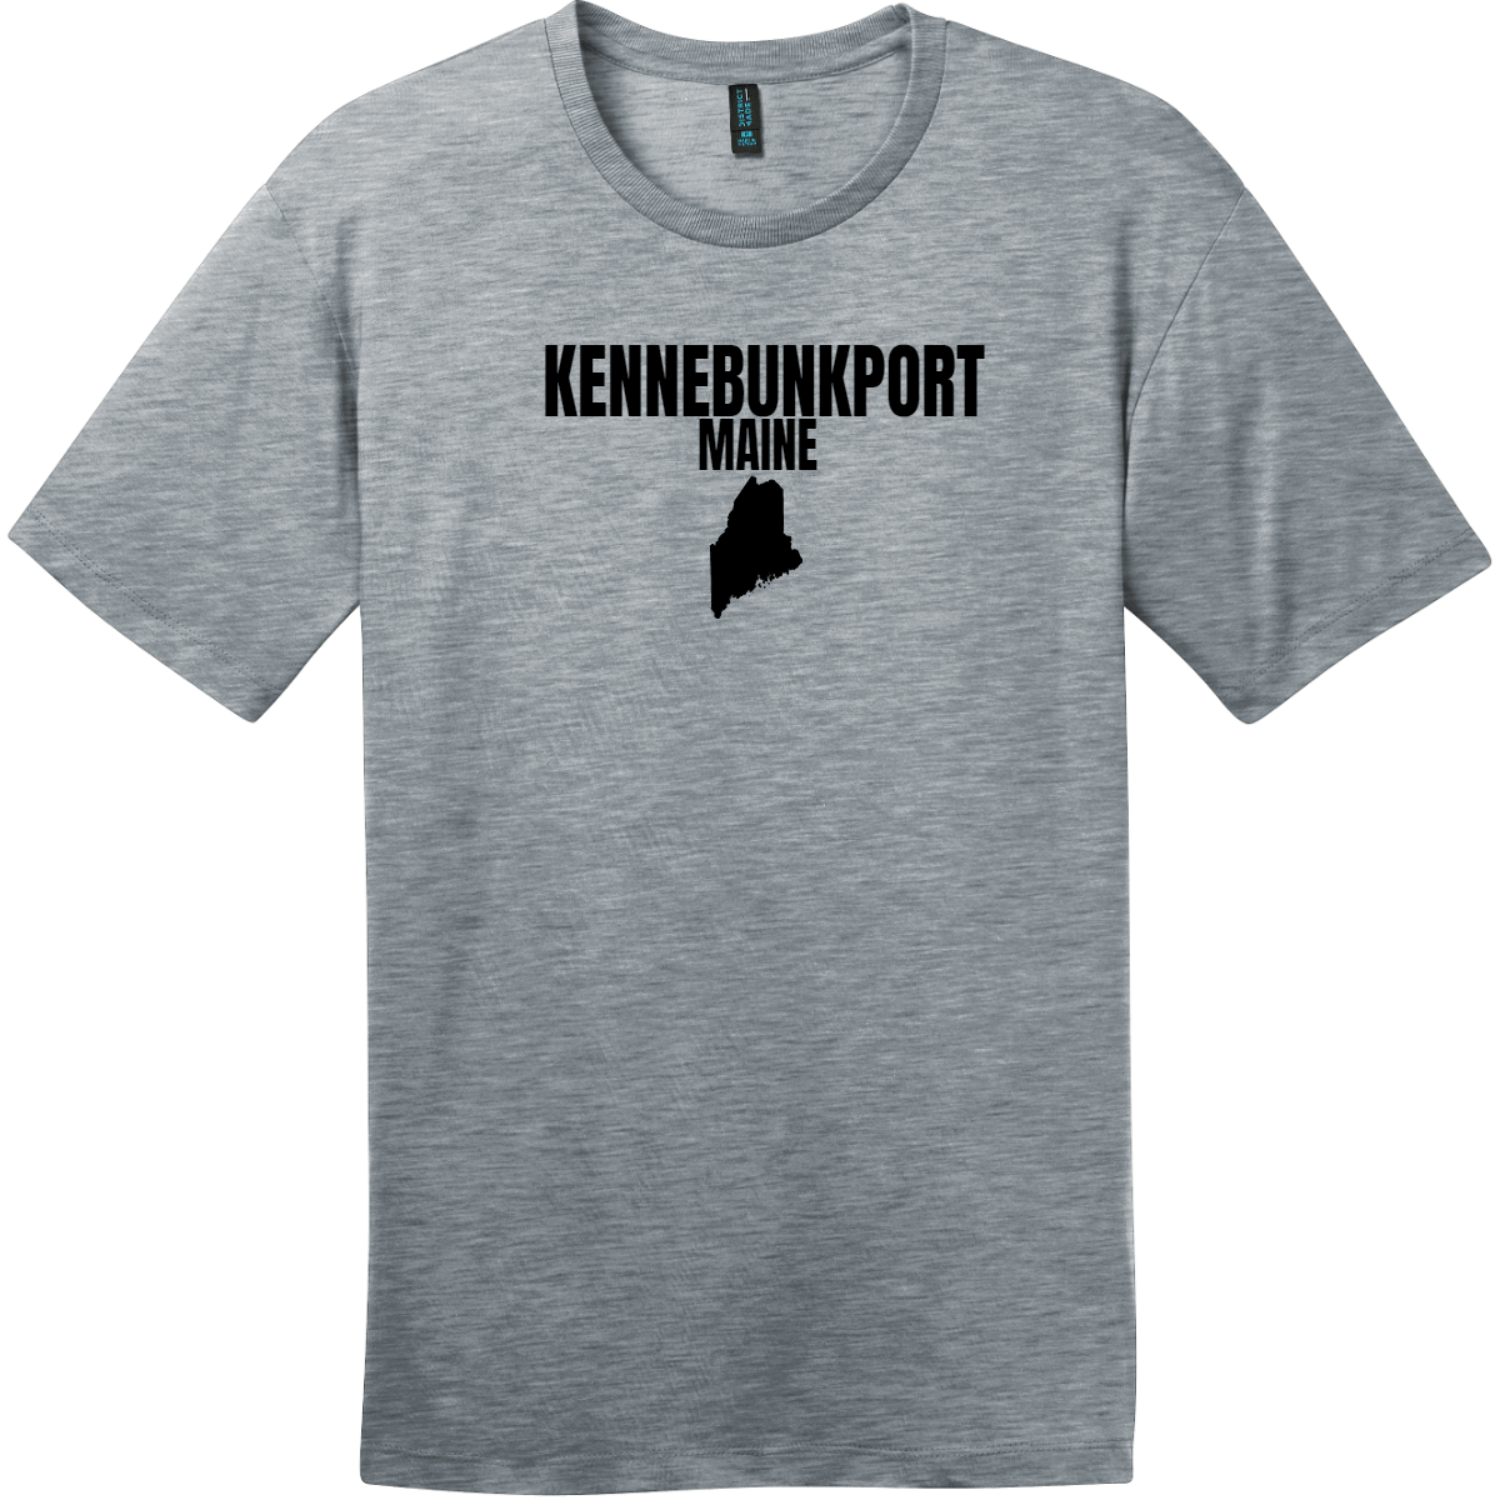 Kennebunkport Maine State T-Shirt Heathered Steel District Perfect Weight Tee DT104